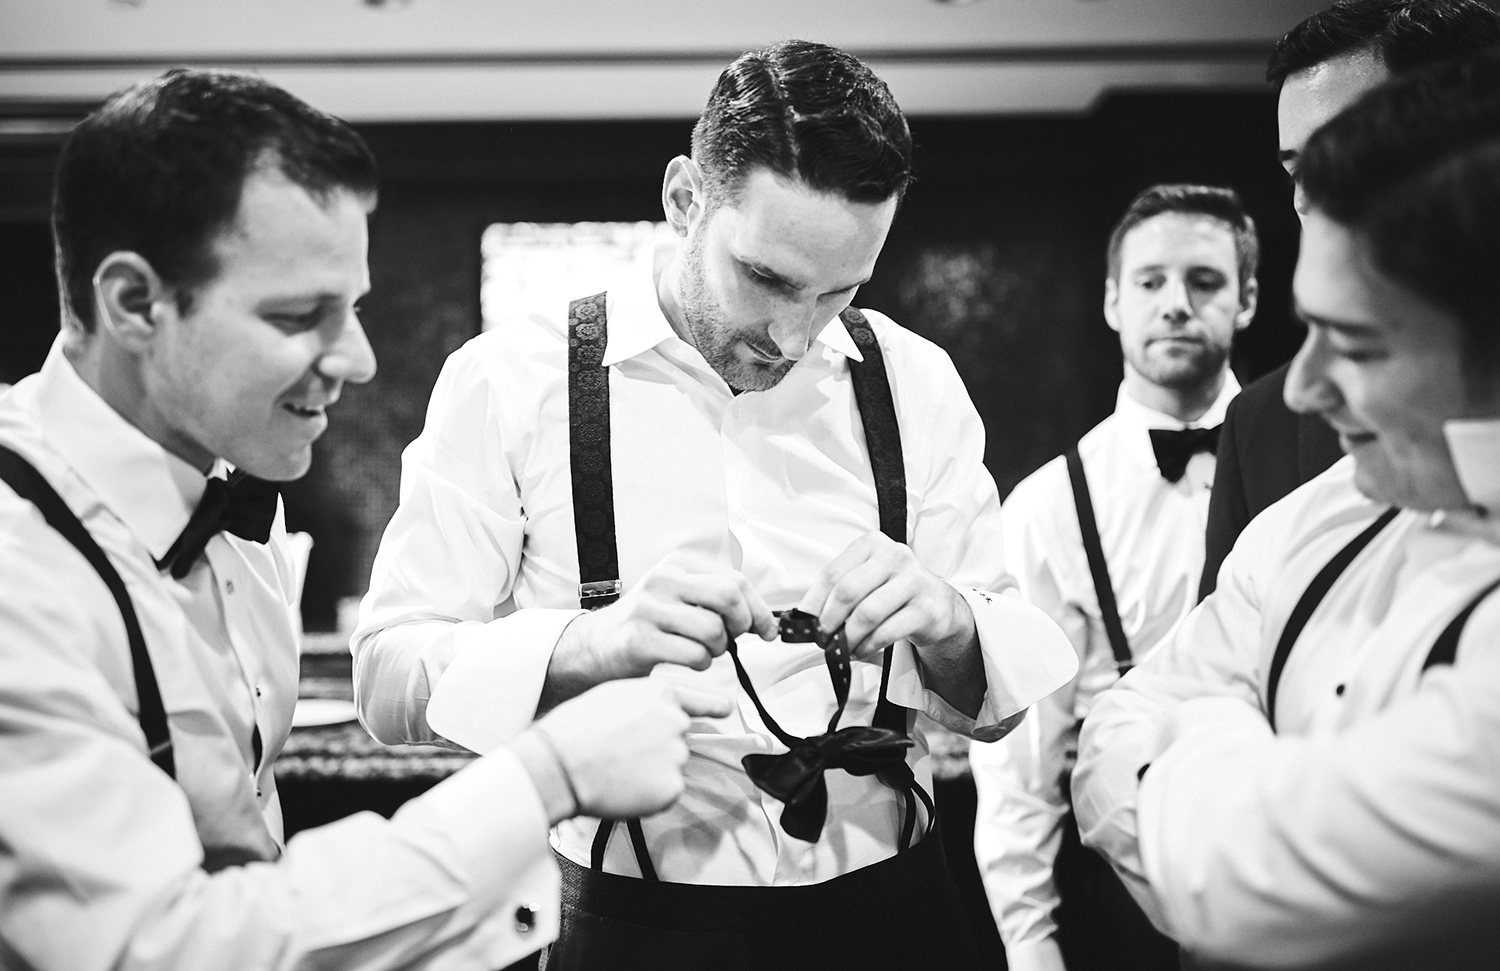 180519_PalaceatSomersetParkWeddingPhotography_NJWeddingPhotographer_By_BriJohnsonWeddings_0005.jpg